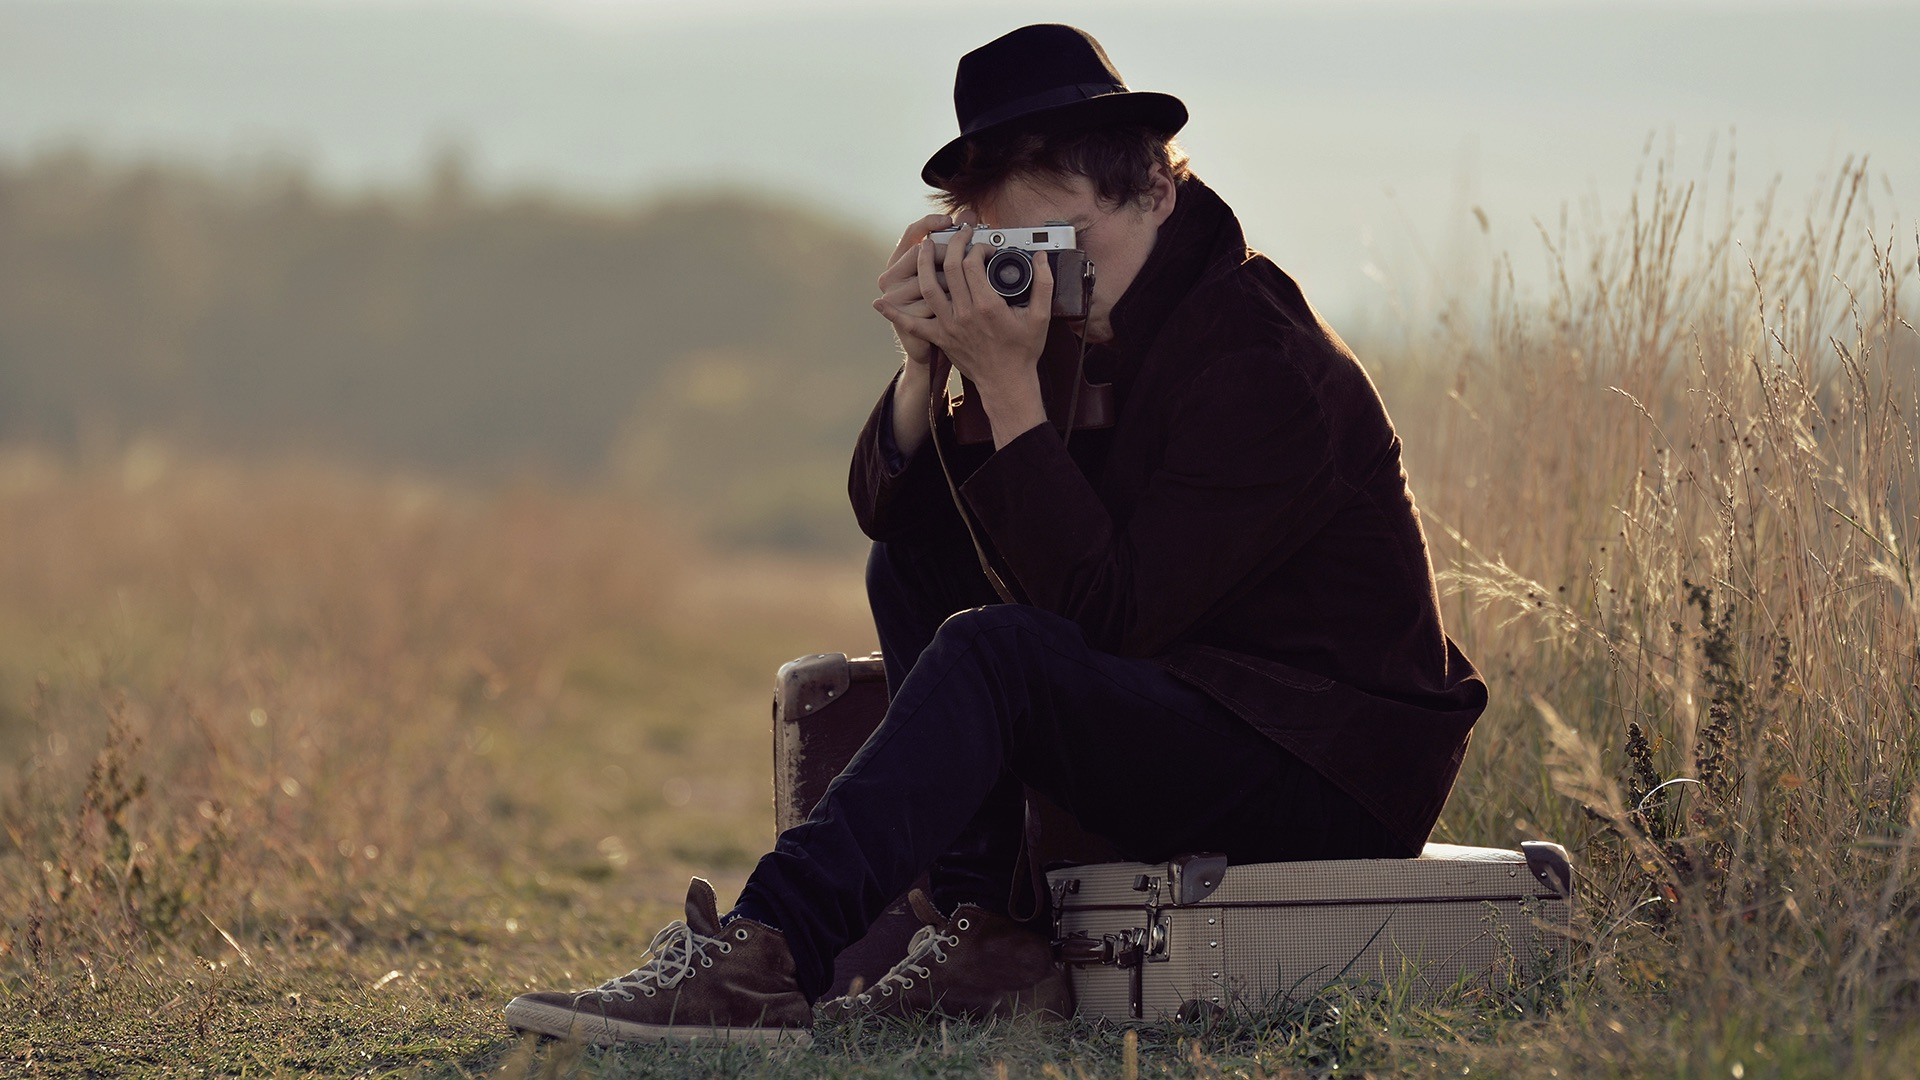 20 best professional photography schools in the world